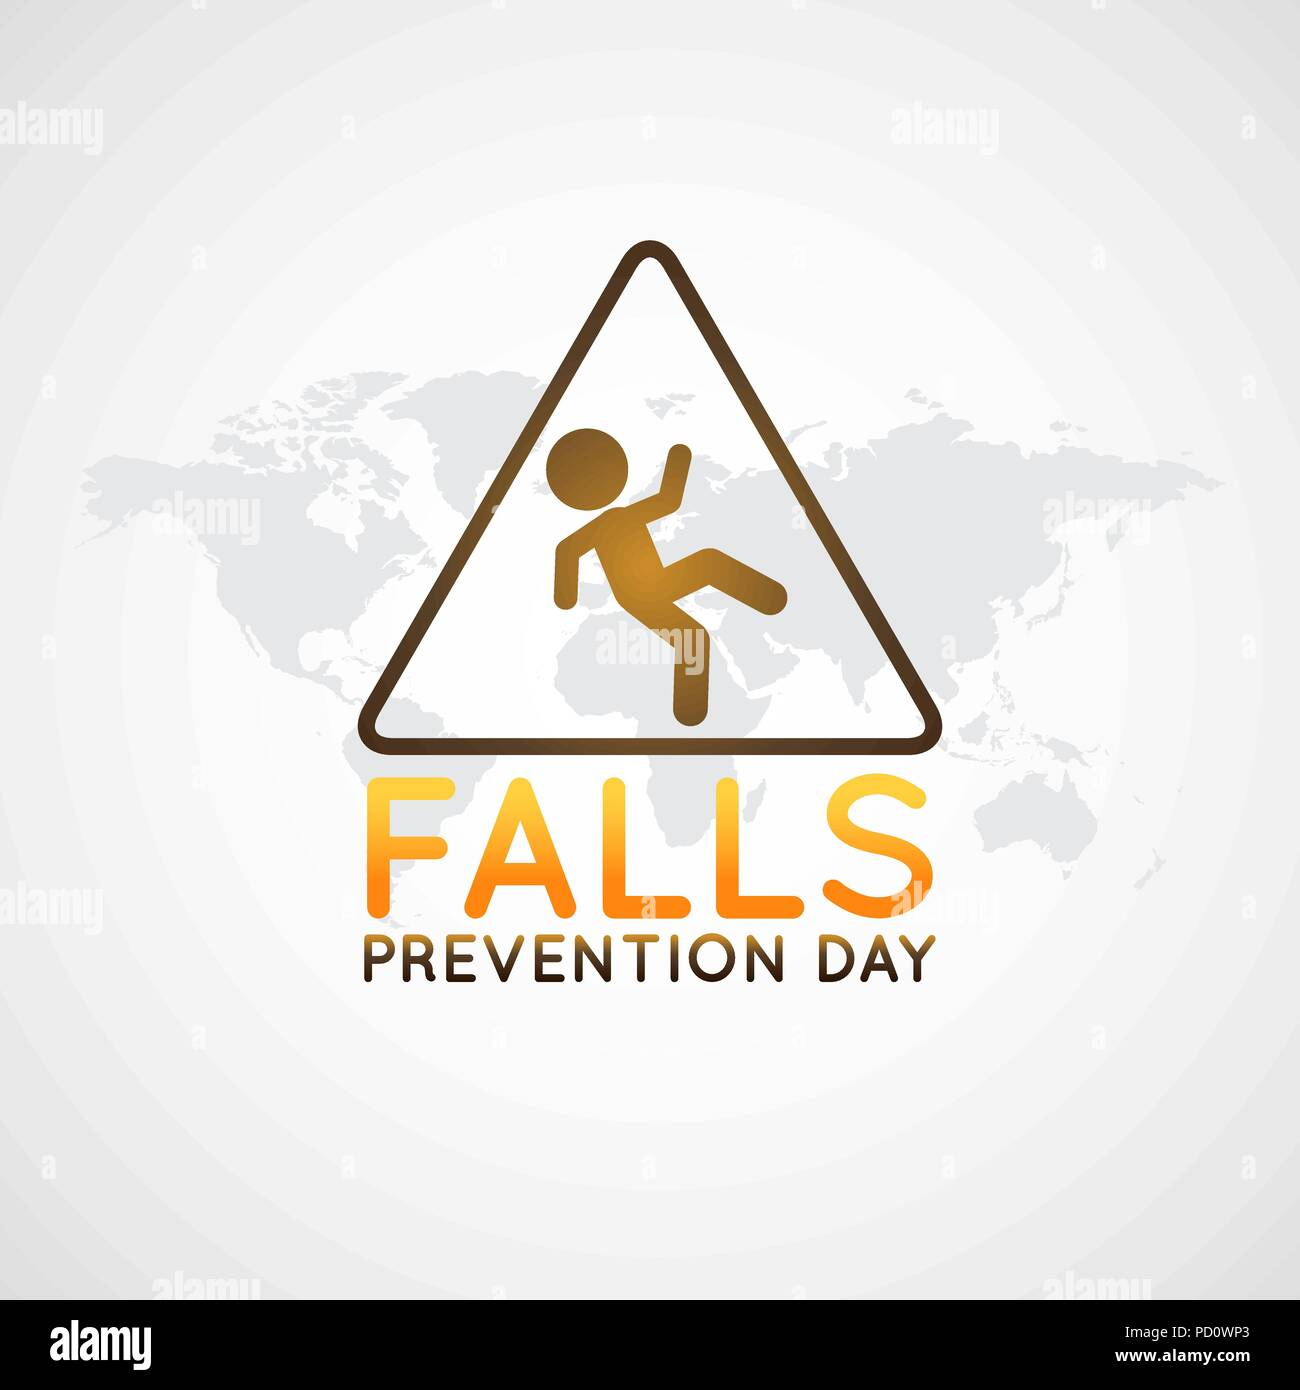 Falls Prevention Day vector logo icon illustration - Stock Vector